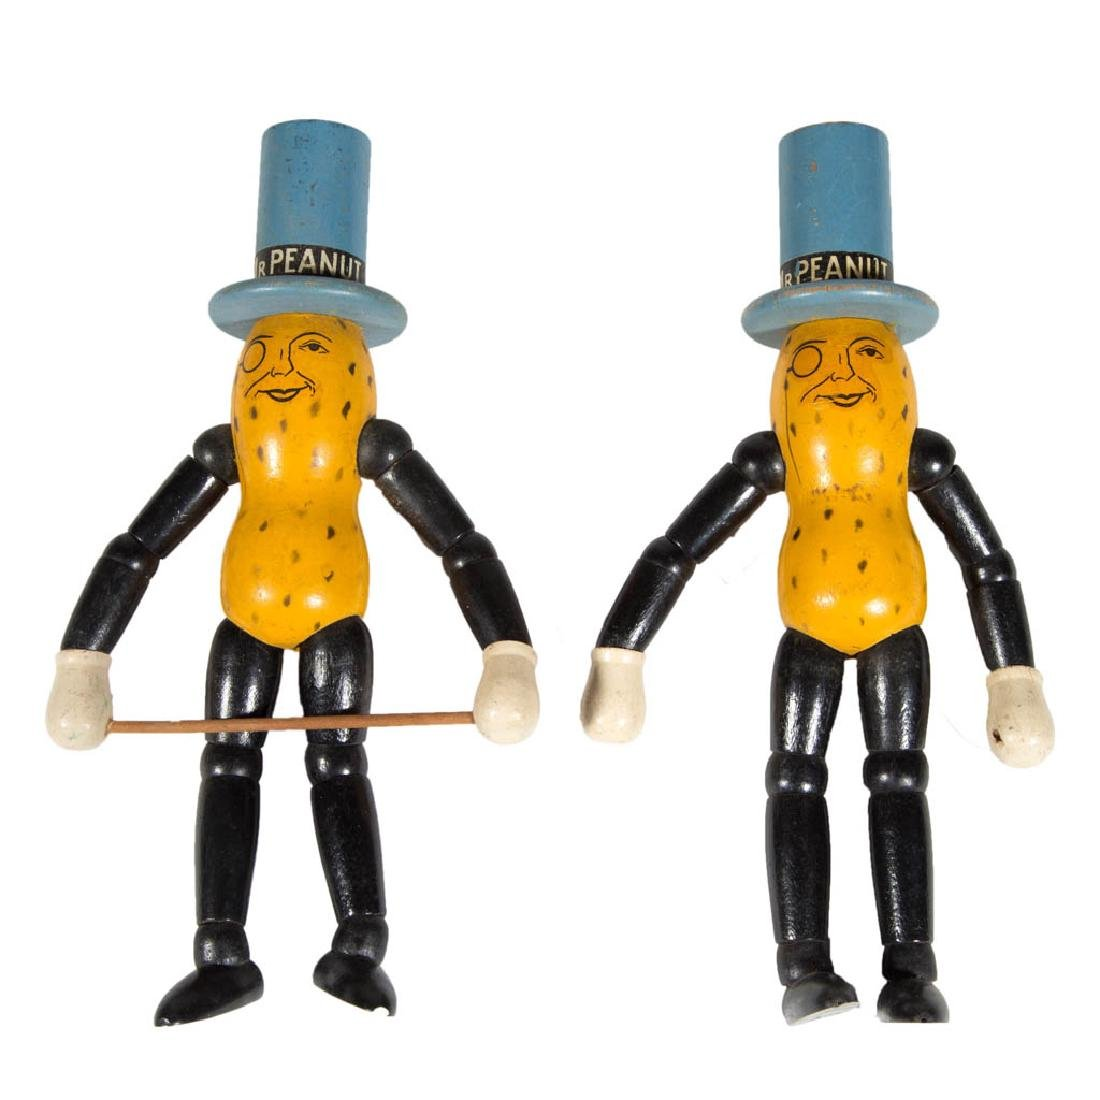 PLANTERS MR. PEANUT JOINTED WOODEN ADVERTISING DOLLS,